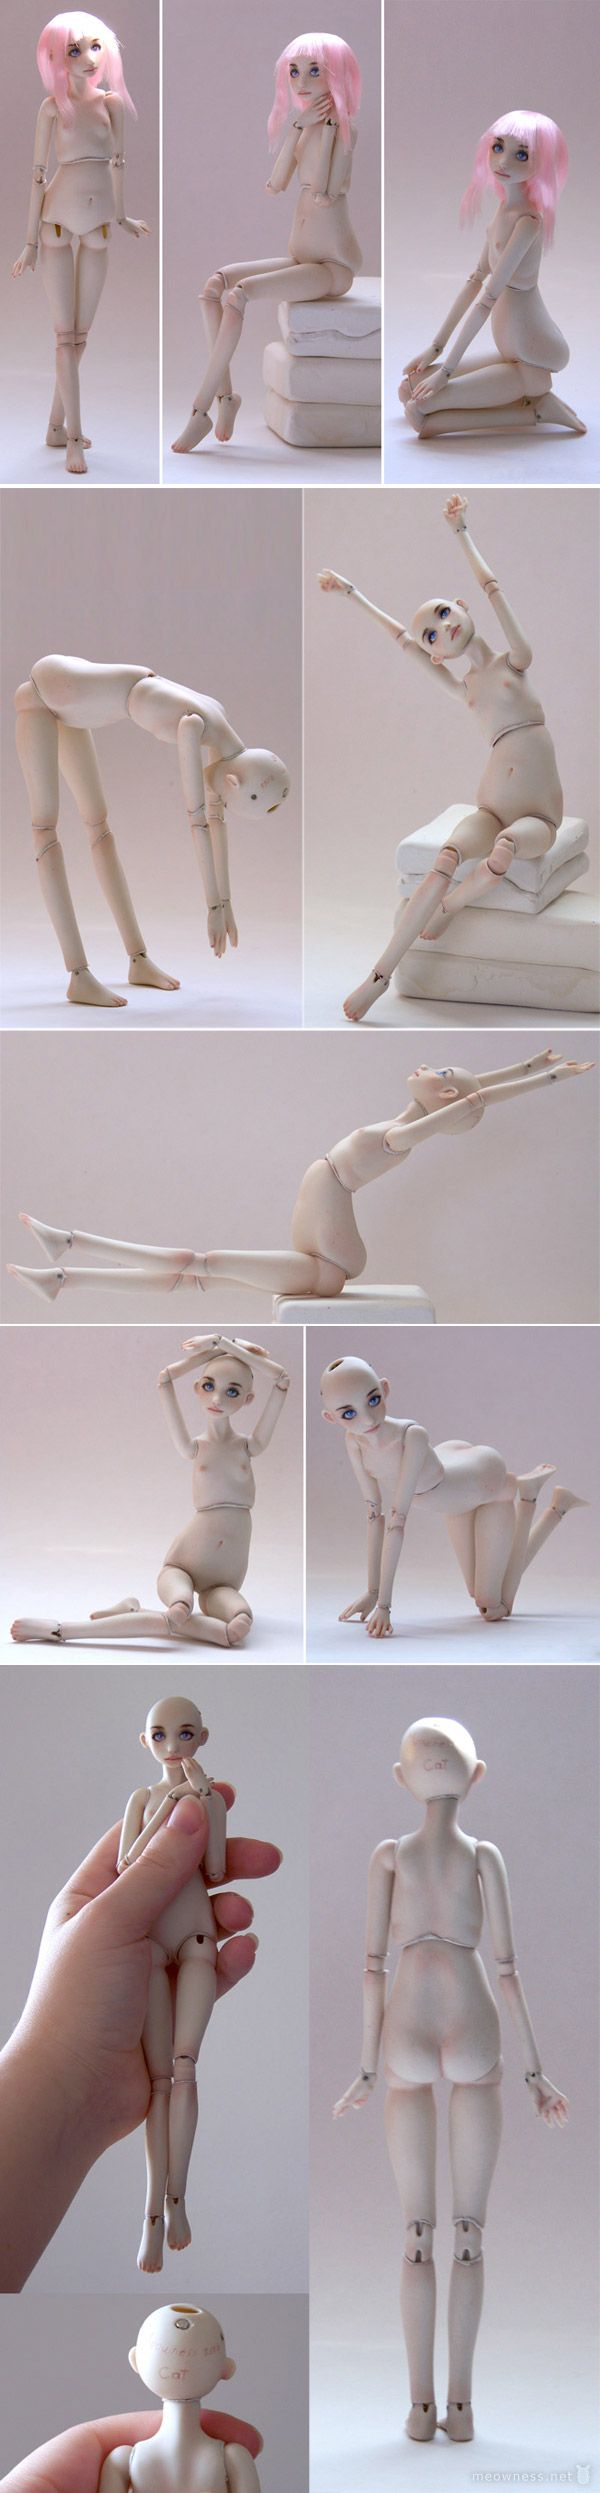 Dolly Poses by ladymeow.deviantart.com on @deviantART